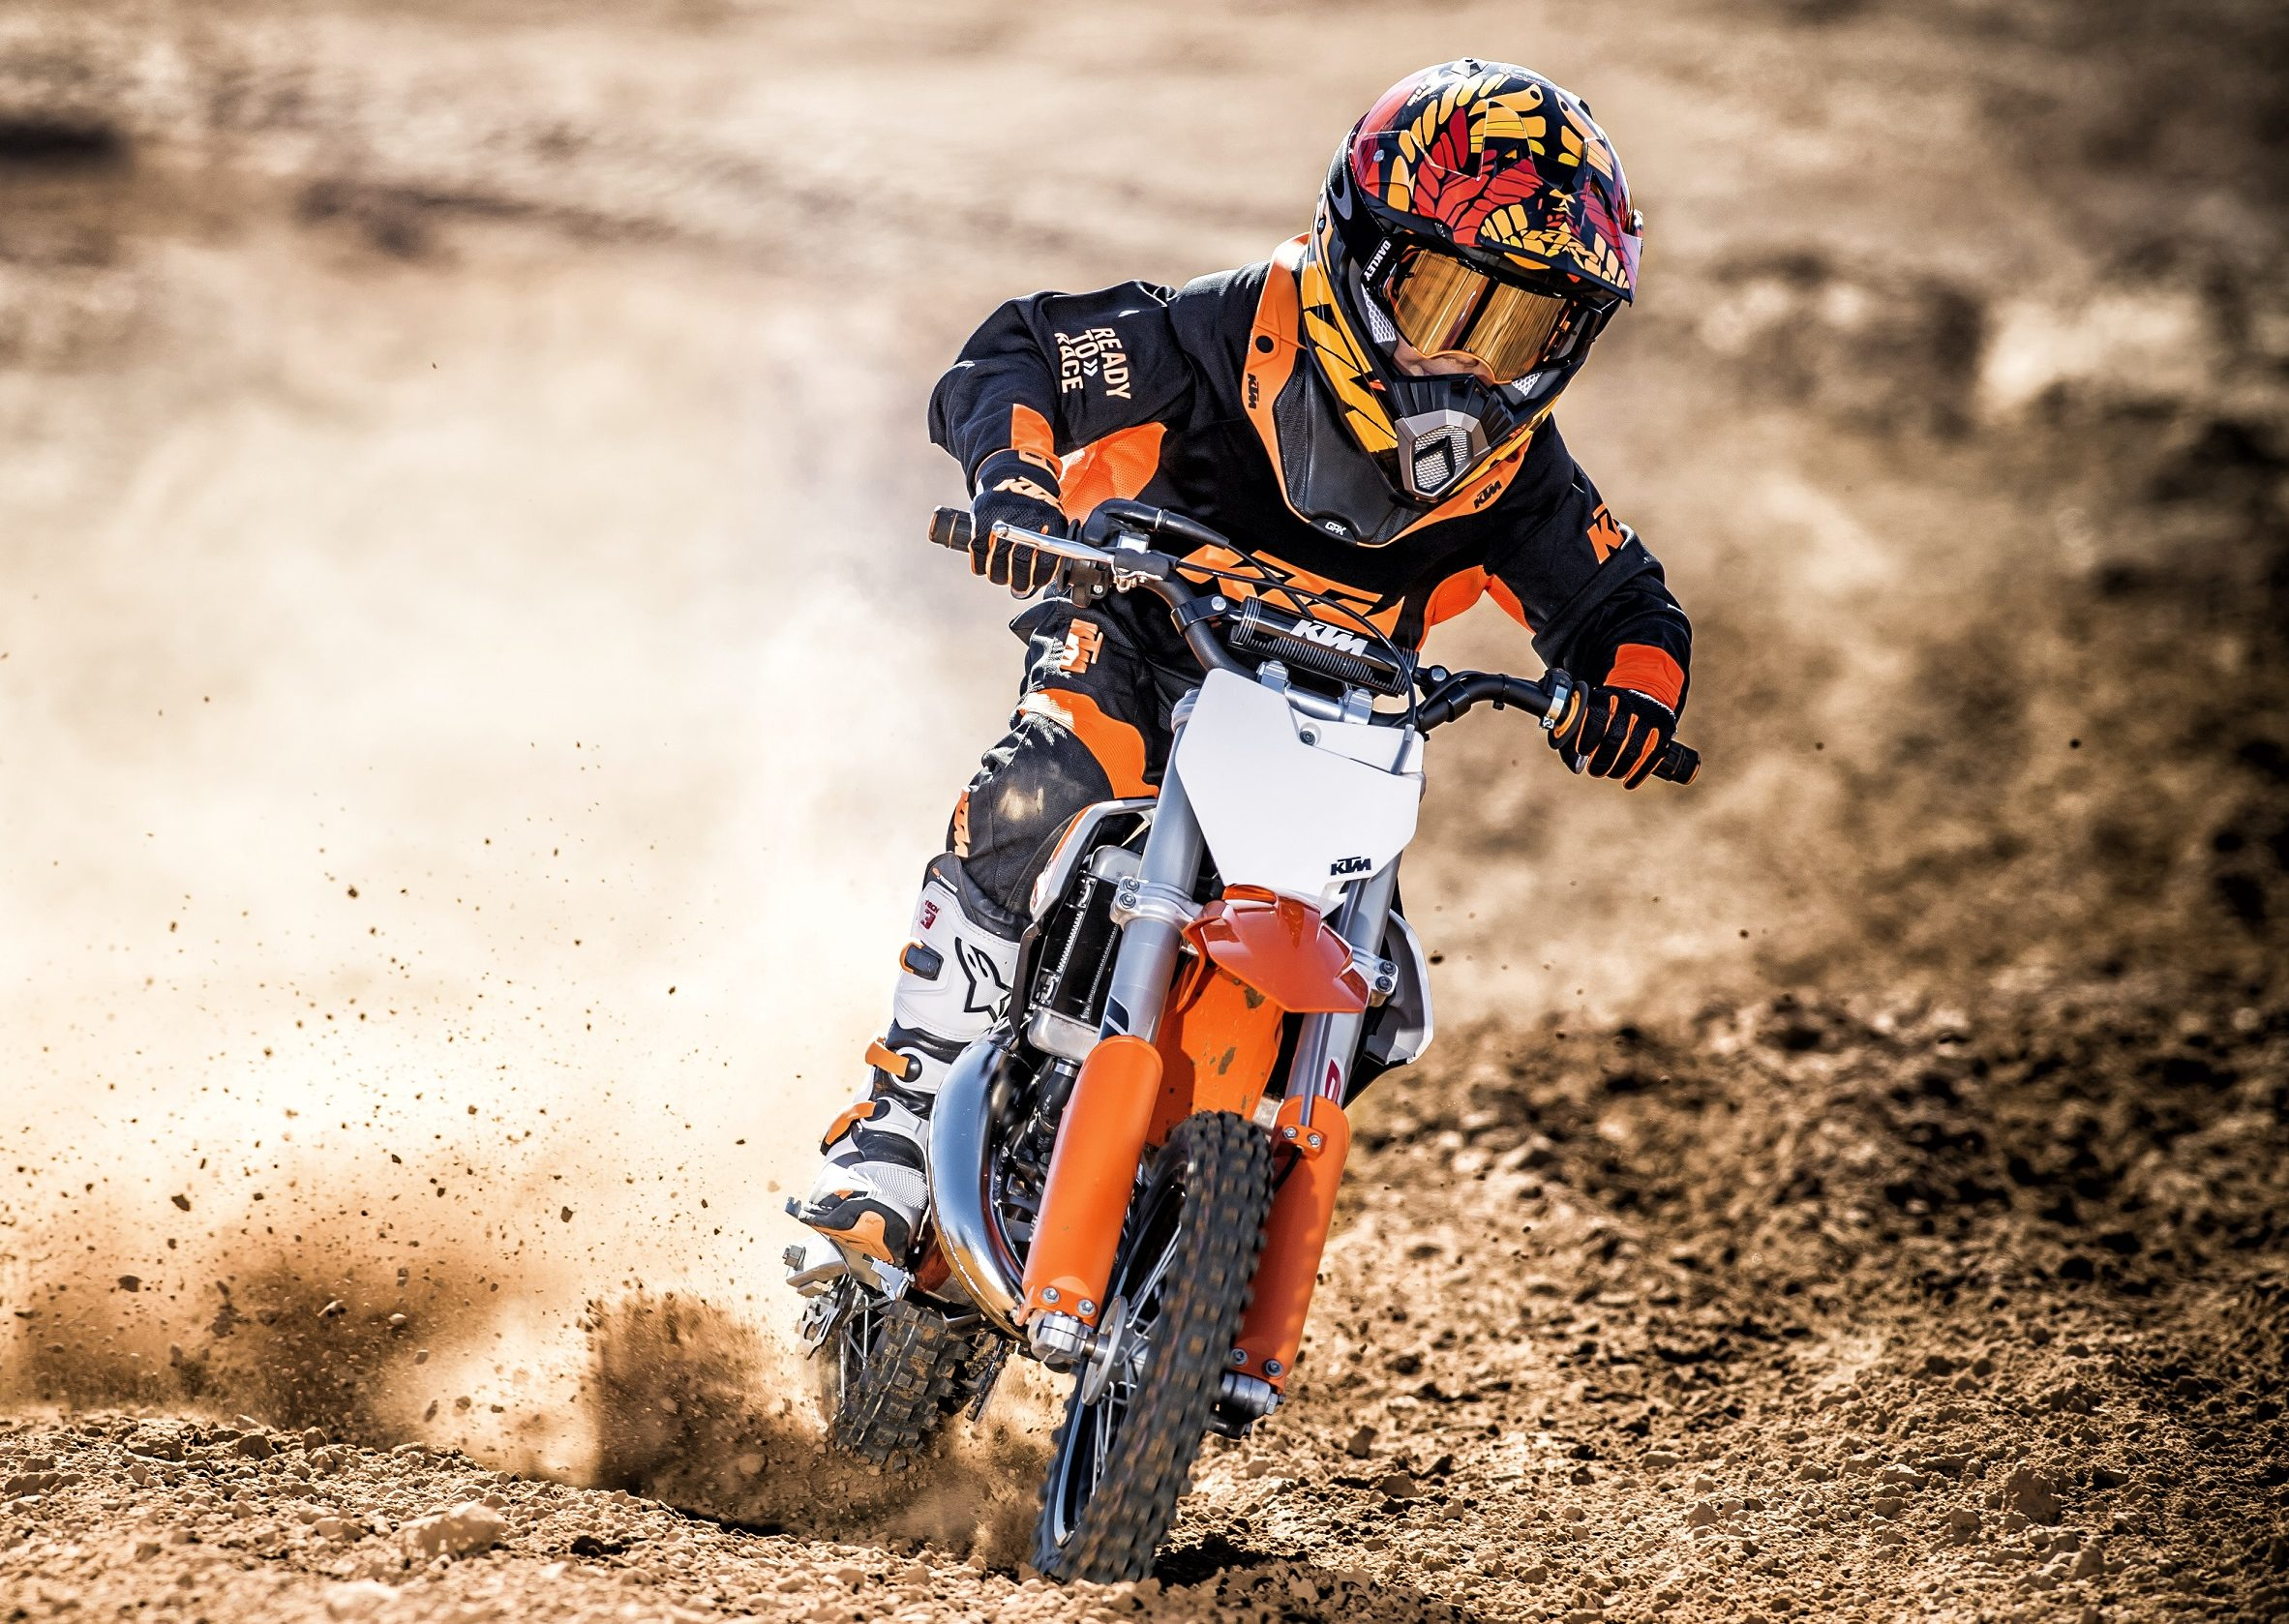 2017 Ktm Sport Minicycle Range Launched In Vegas